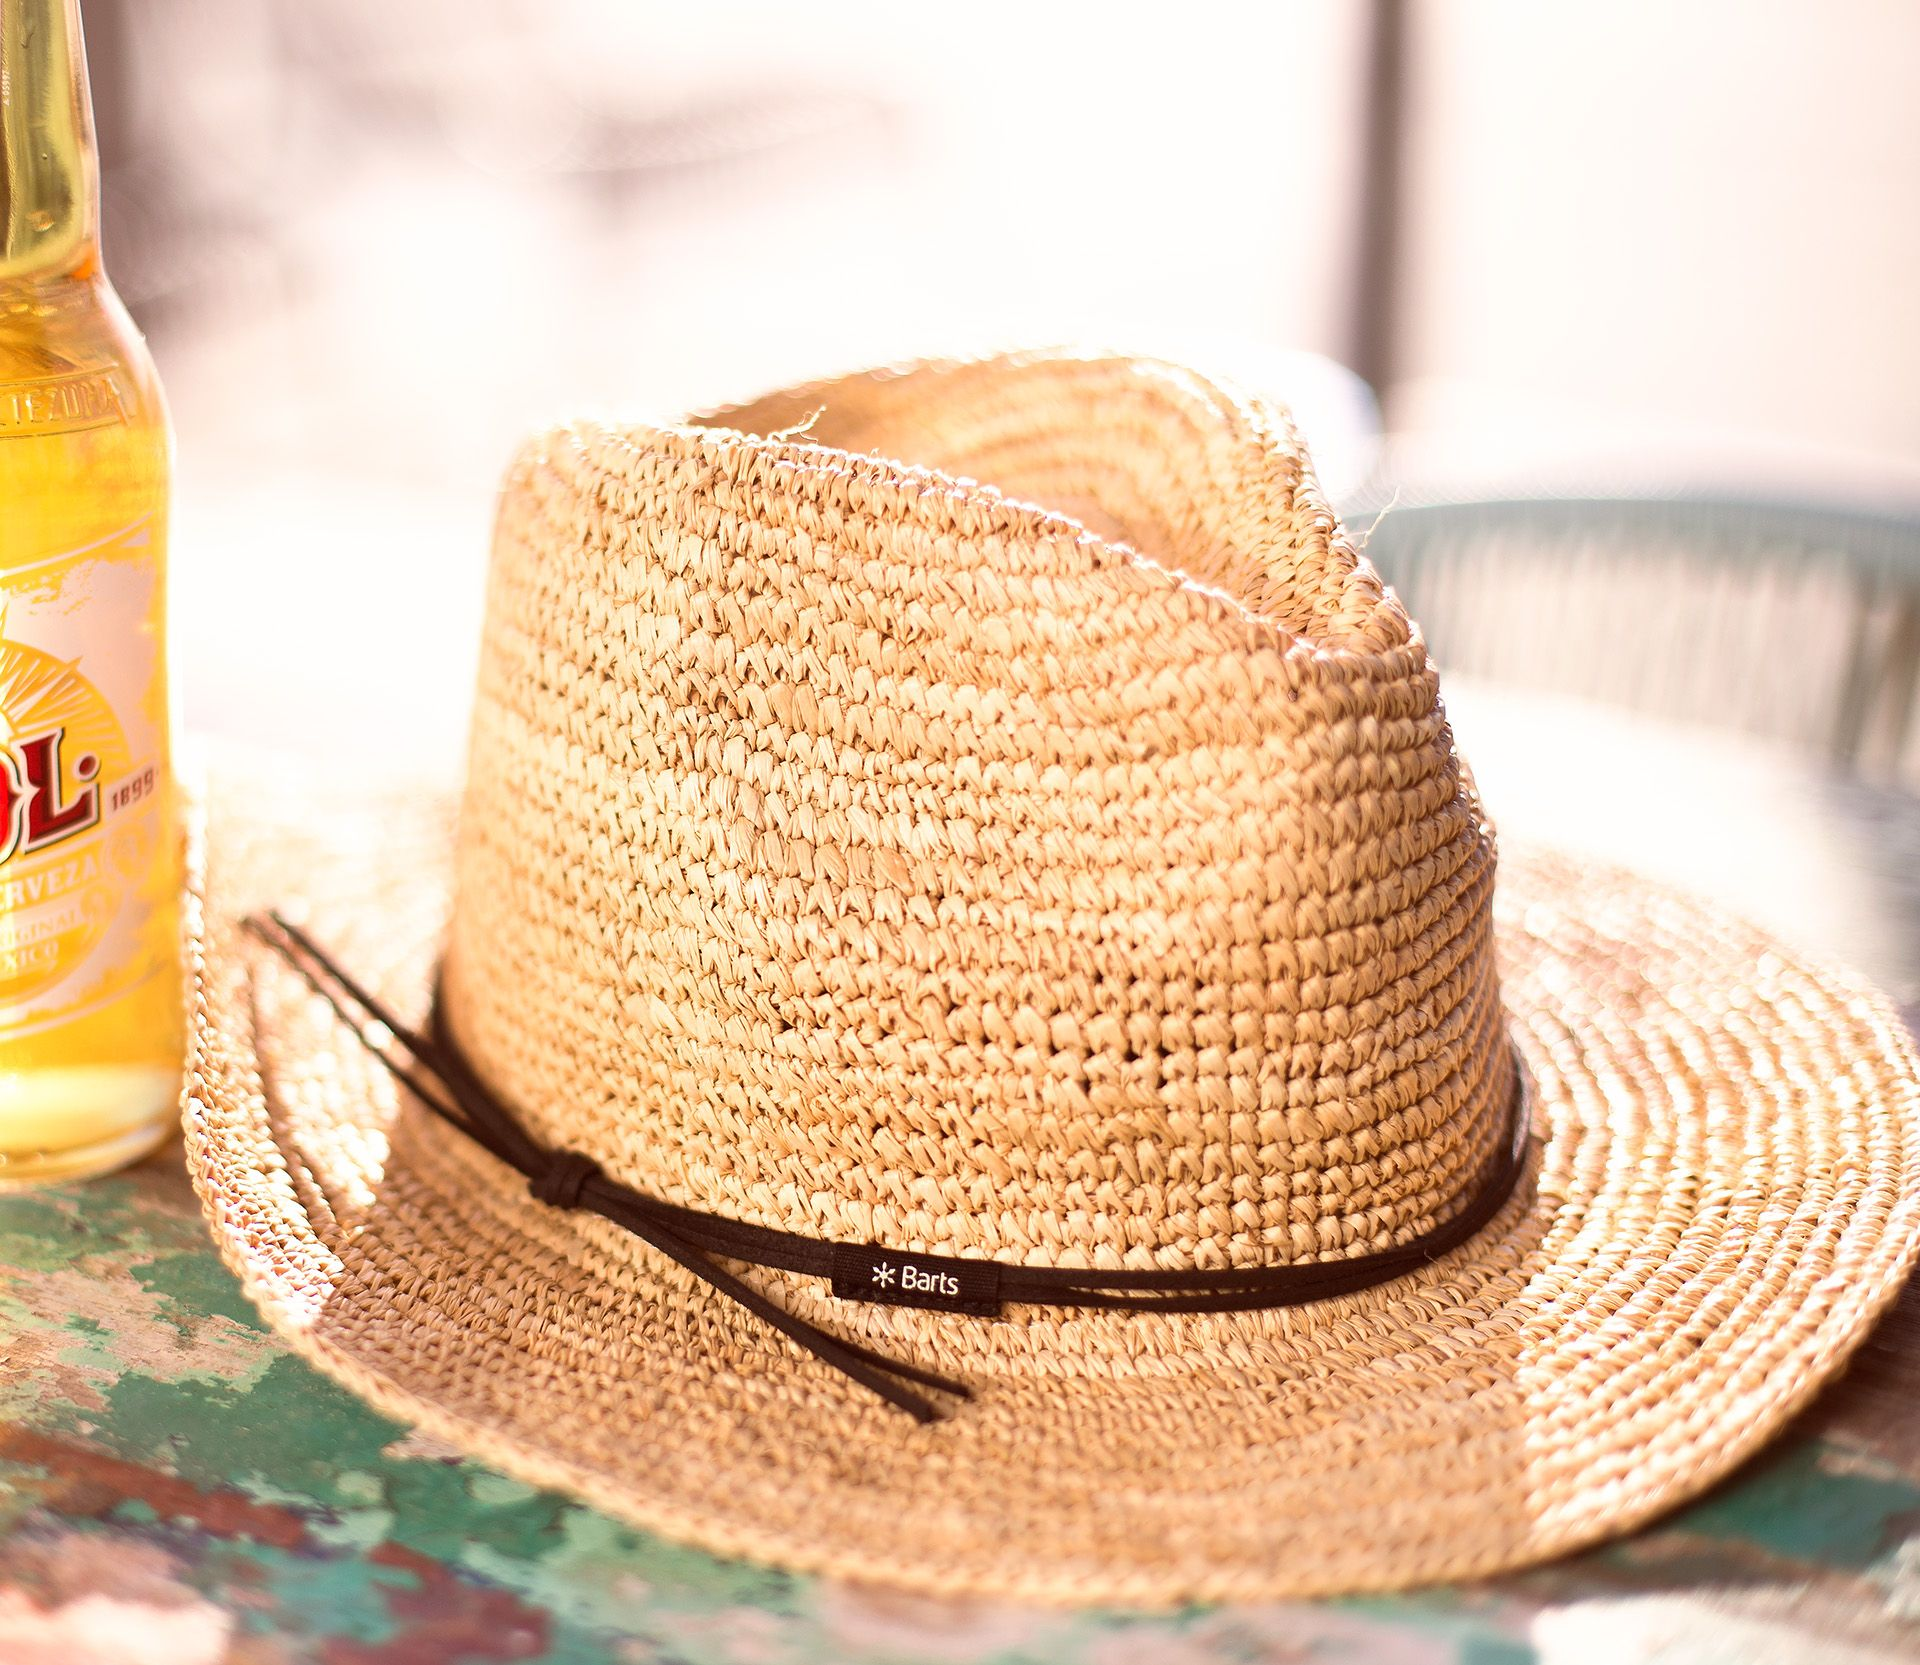 20094c59b The Celery hat is a floppy cowboy hat. It is made from raffia, which ...